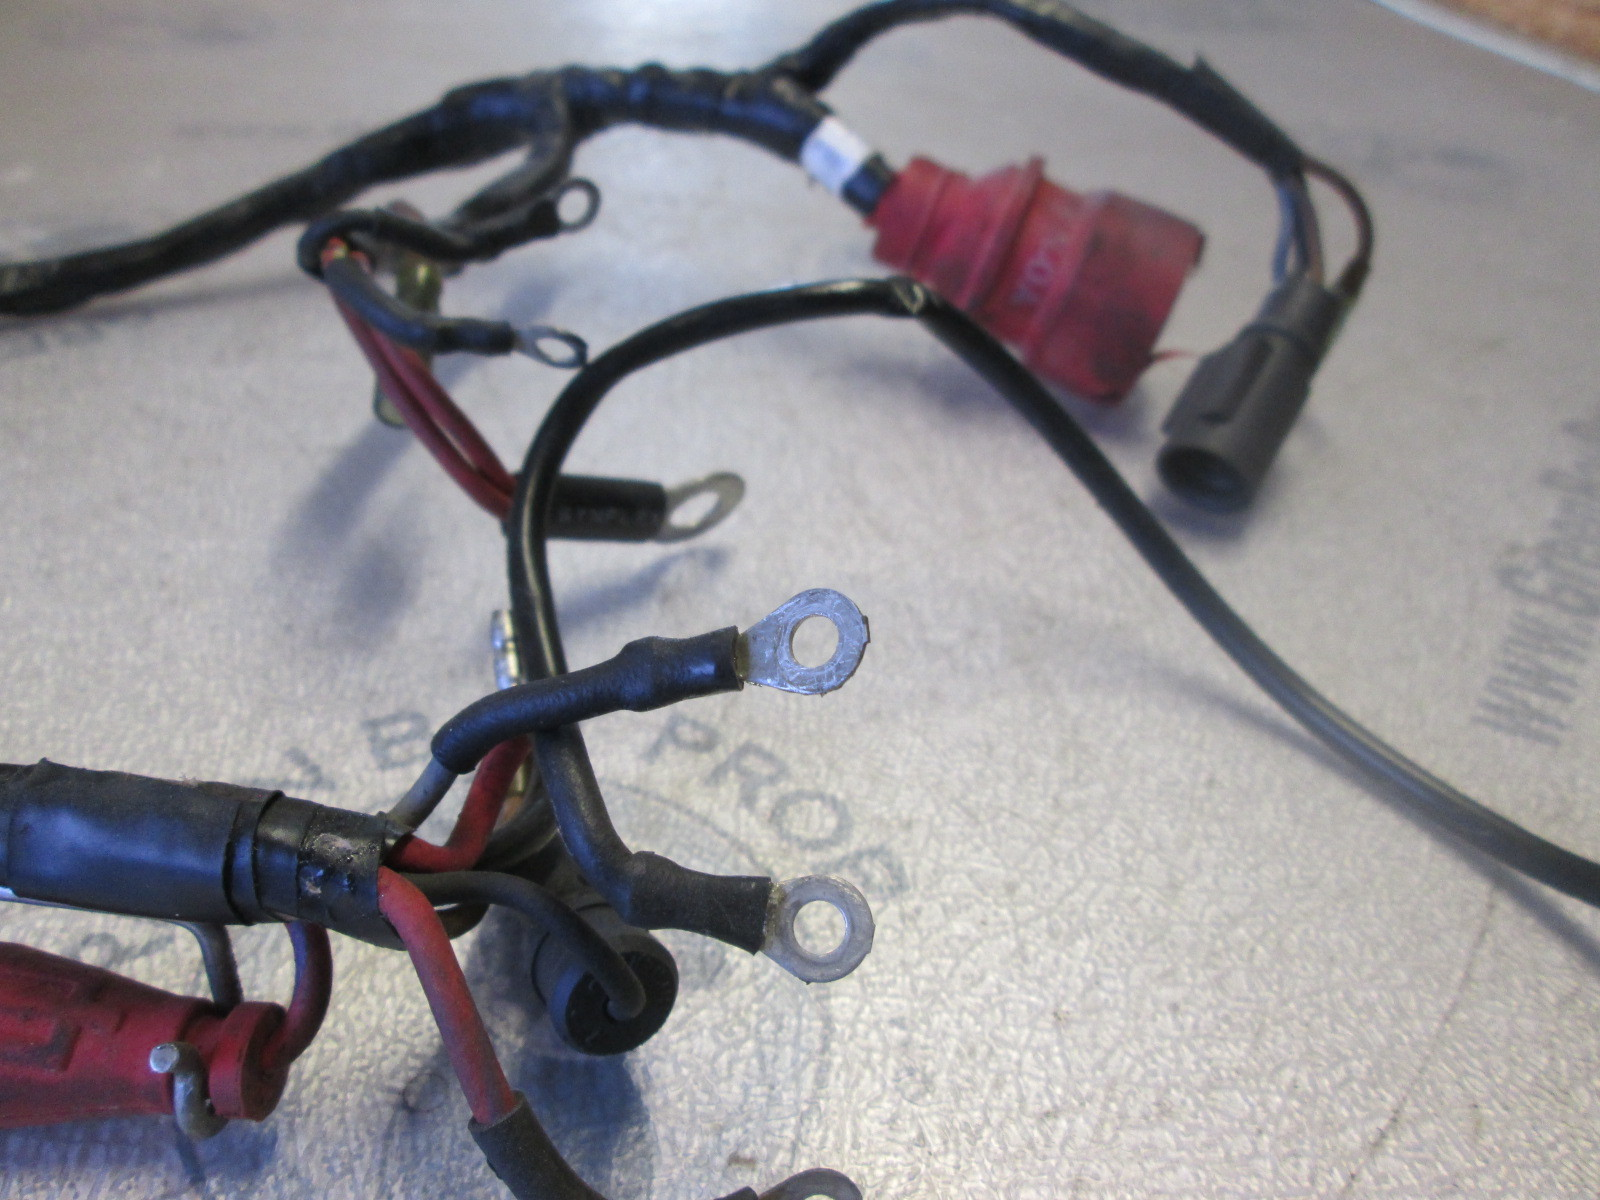 0583649 0512748 Motor Cable Engine Wire Harness Evinrude Johnson 40 50 hp